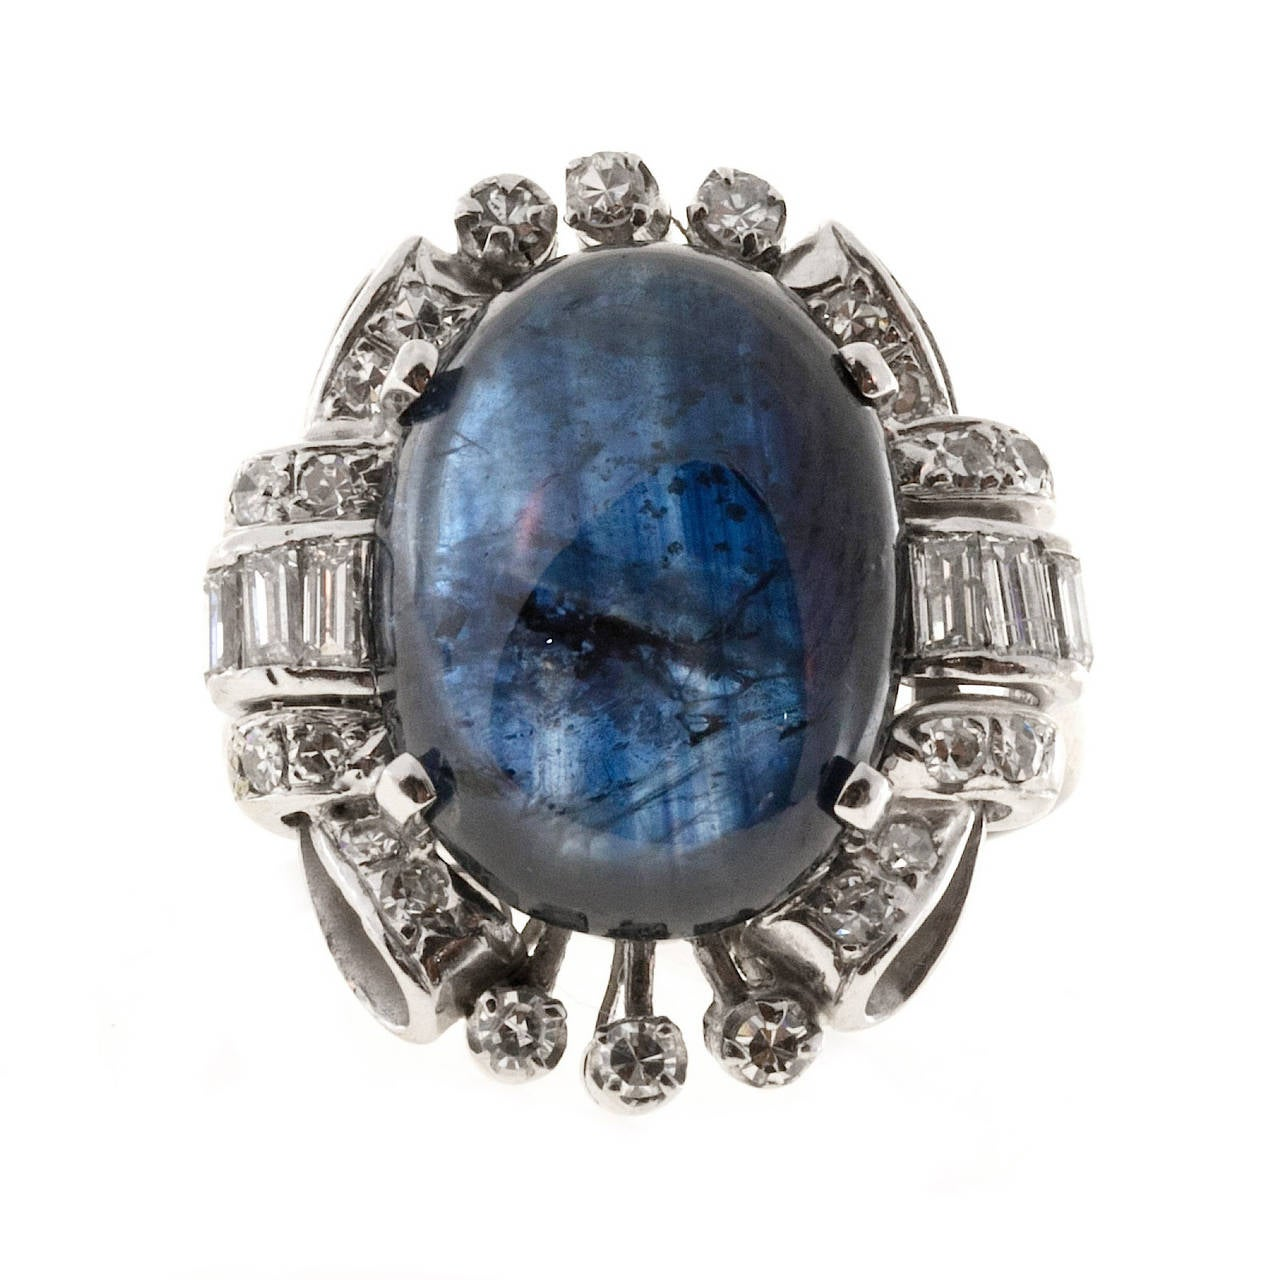 Oval Cabochon Sapphire Diamond Gold Cocktail Ring For Sale 3